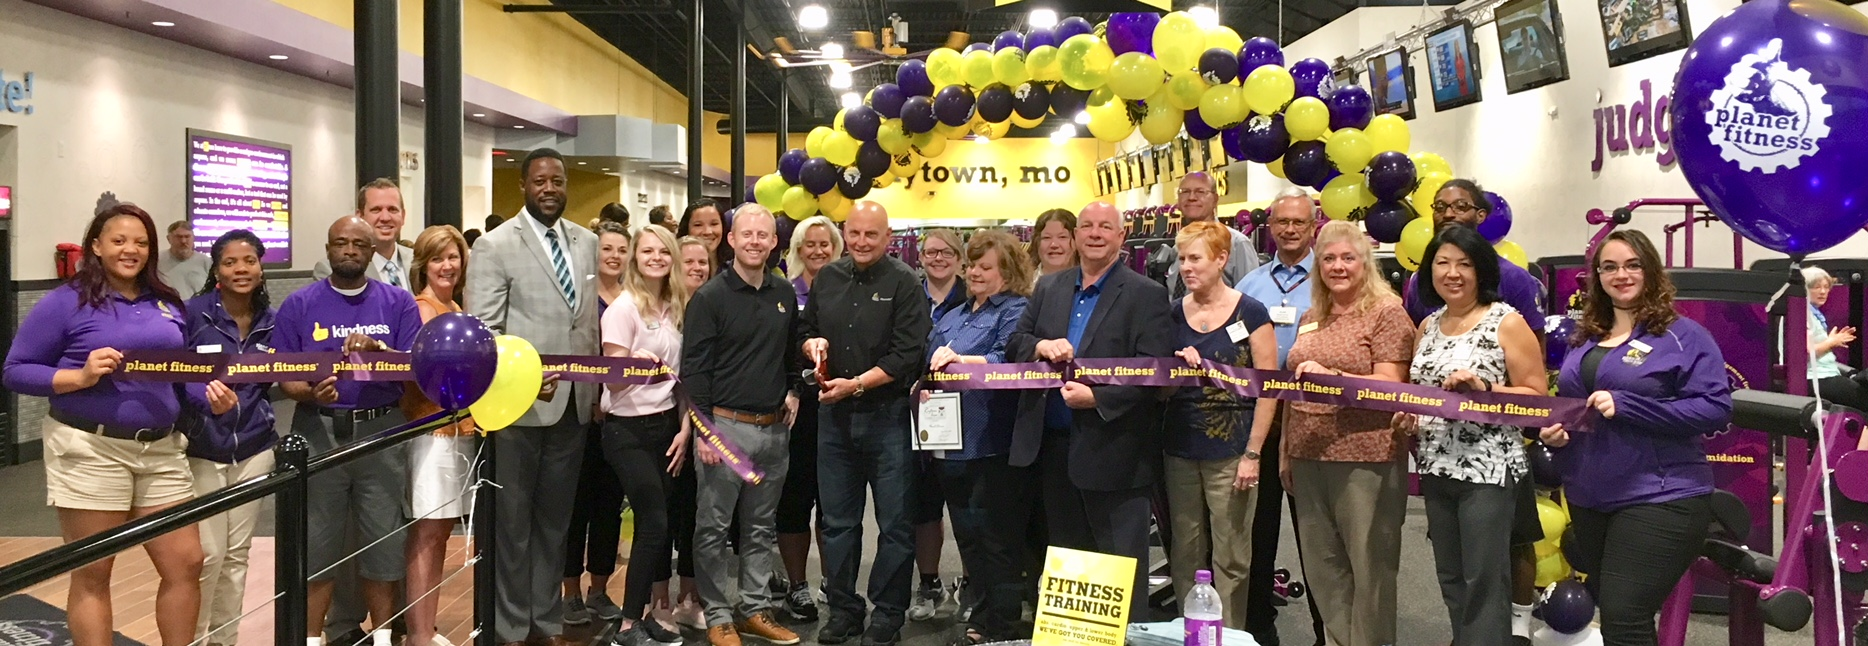 2018 Chamber Ribbon Cuttings Raytown Area Chamber Of Commerce And Tourism